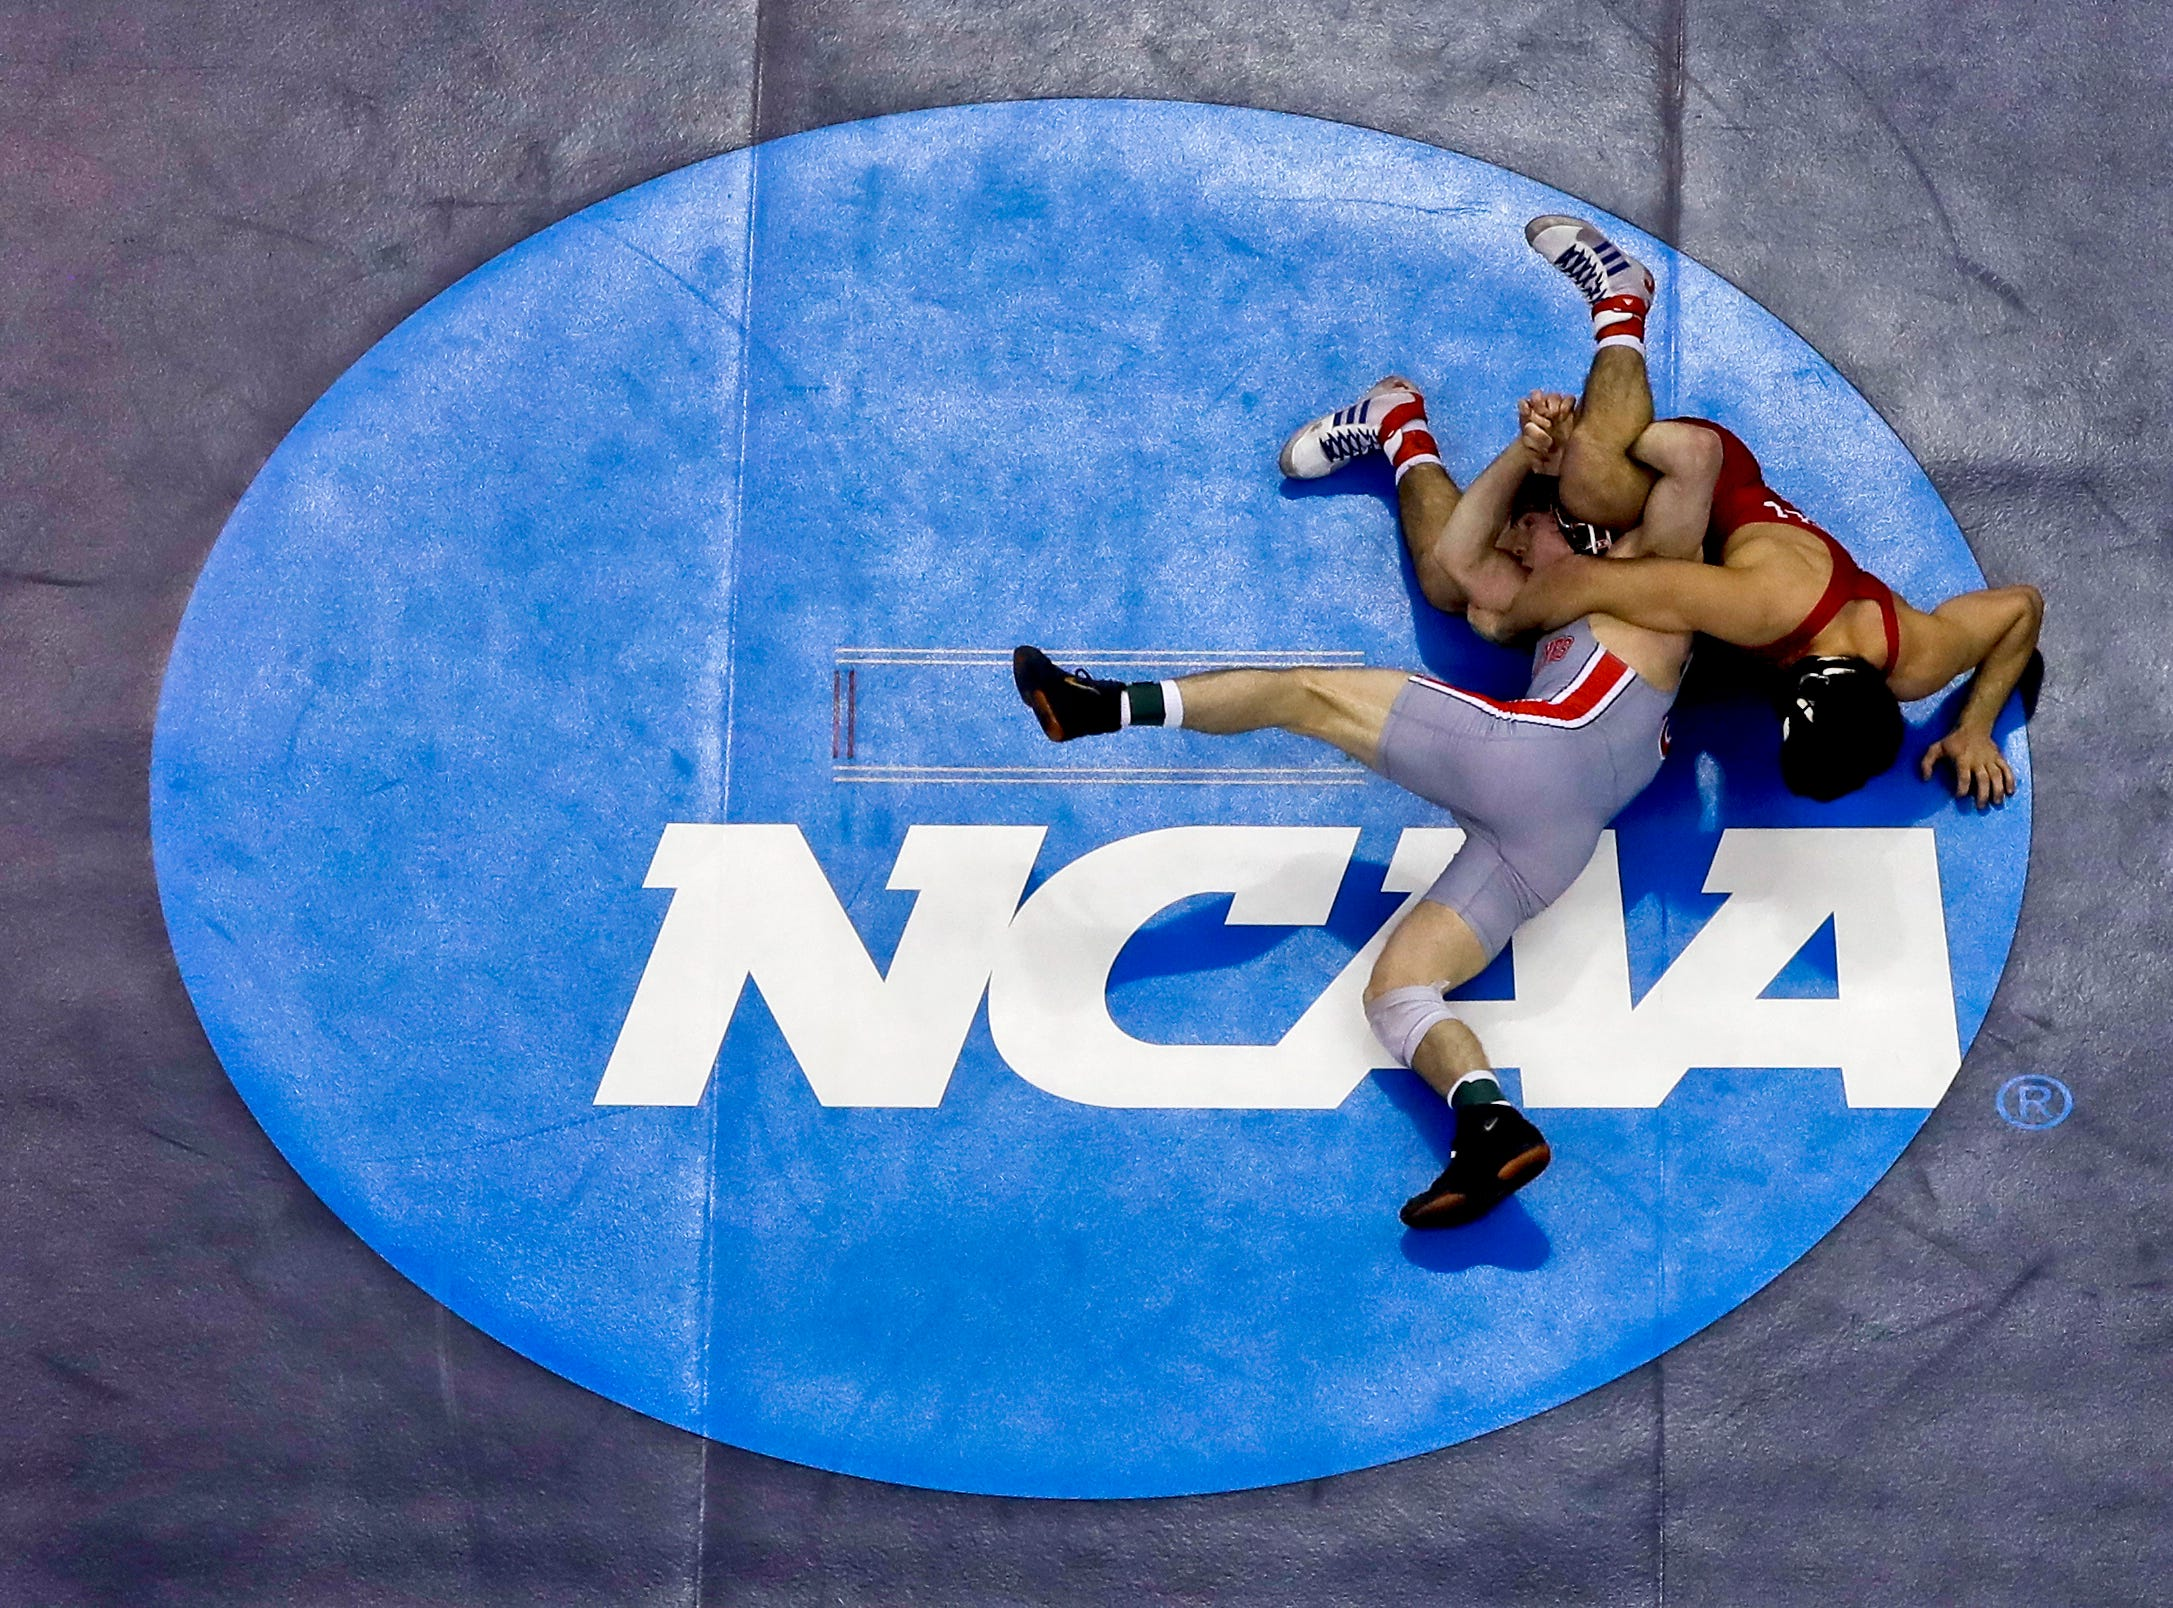 Cornell's Yianni Diakomihalis, right, controls Ohio State's Joey McKenna in their 141-pound match in the finals of the NCAA wrestling championships Saturday, March 23, 2019 in Pittsburgh. Diakomihalis won the match.